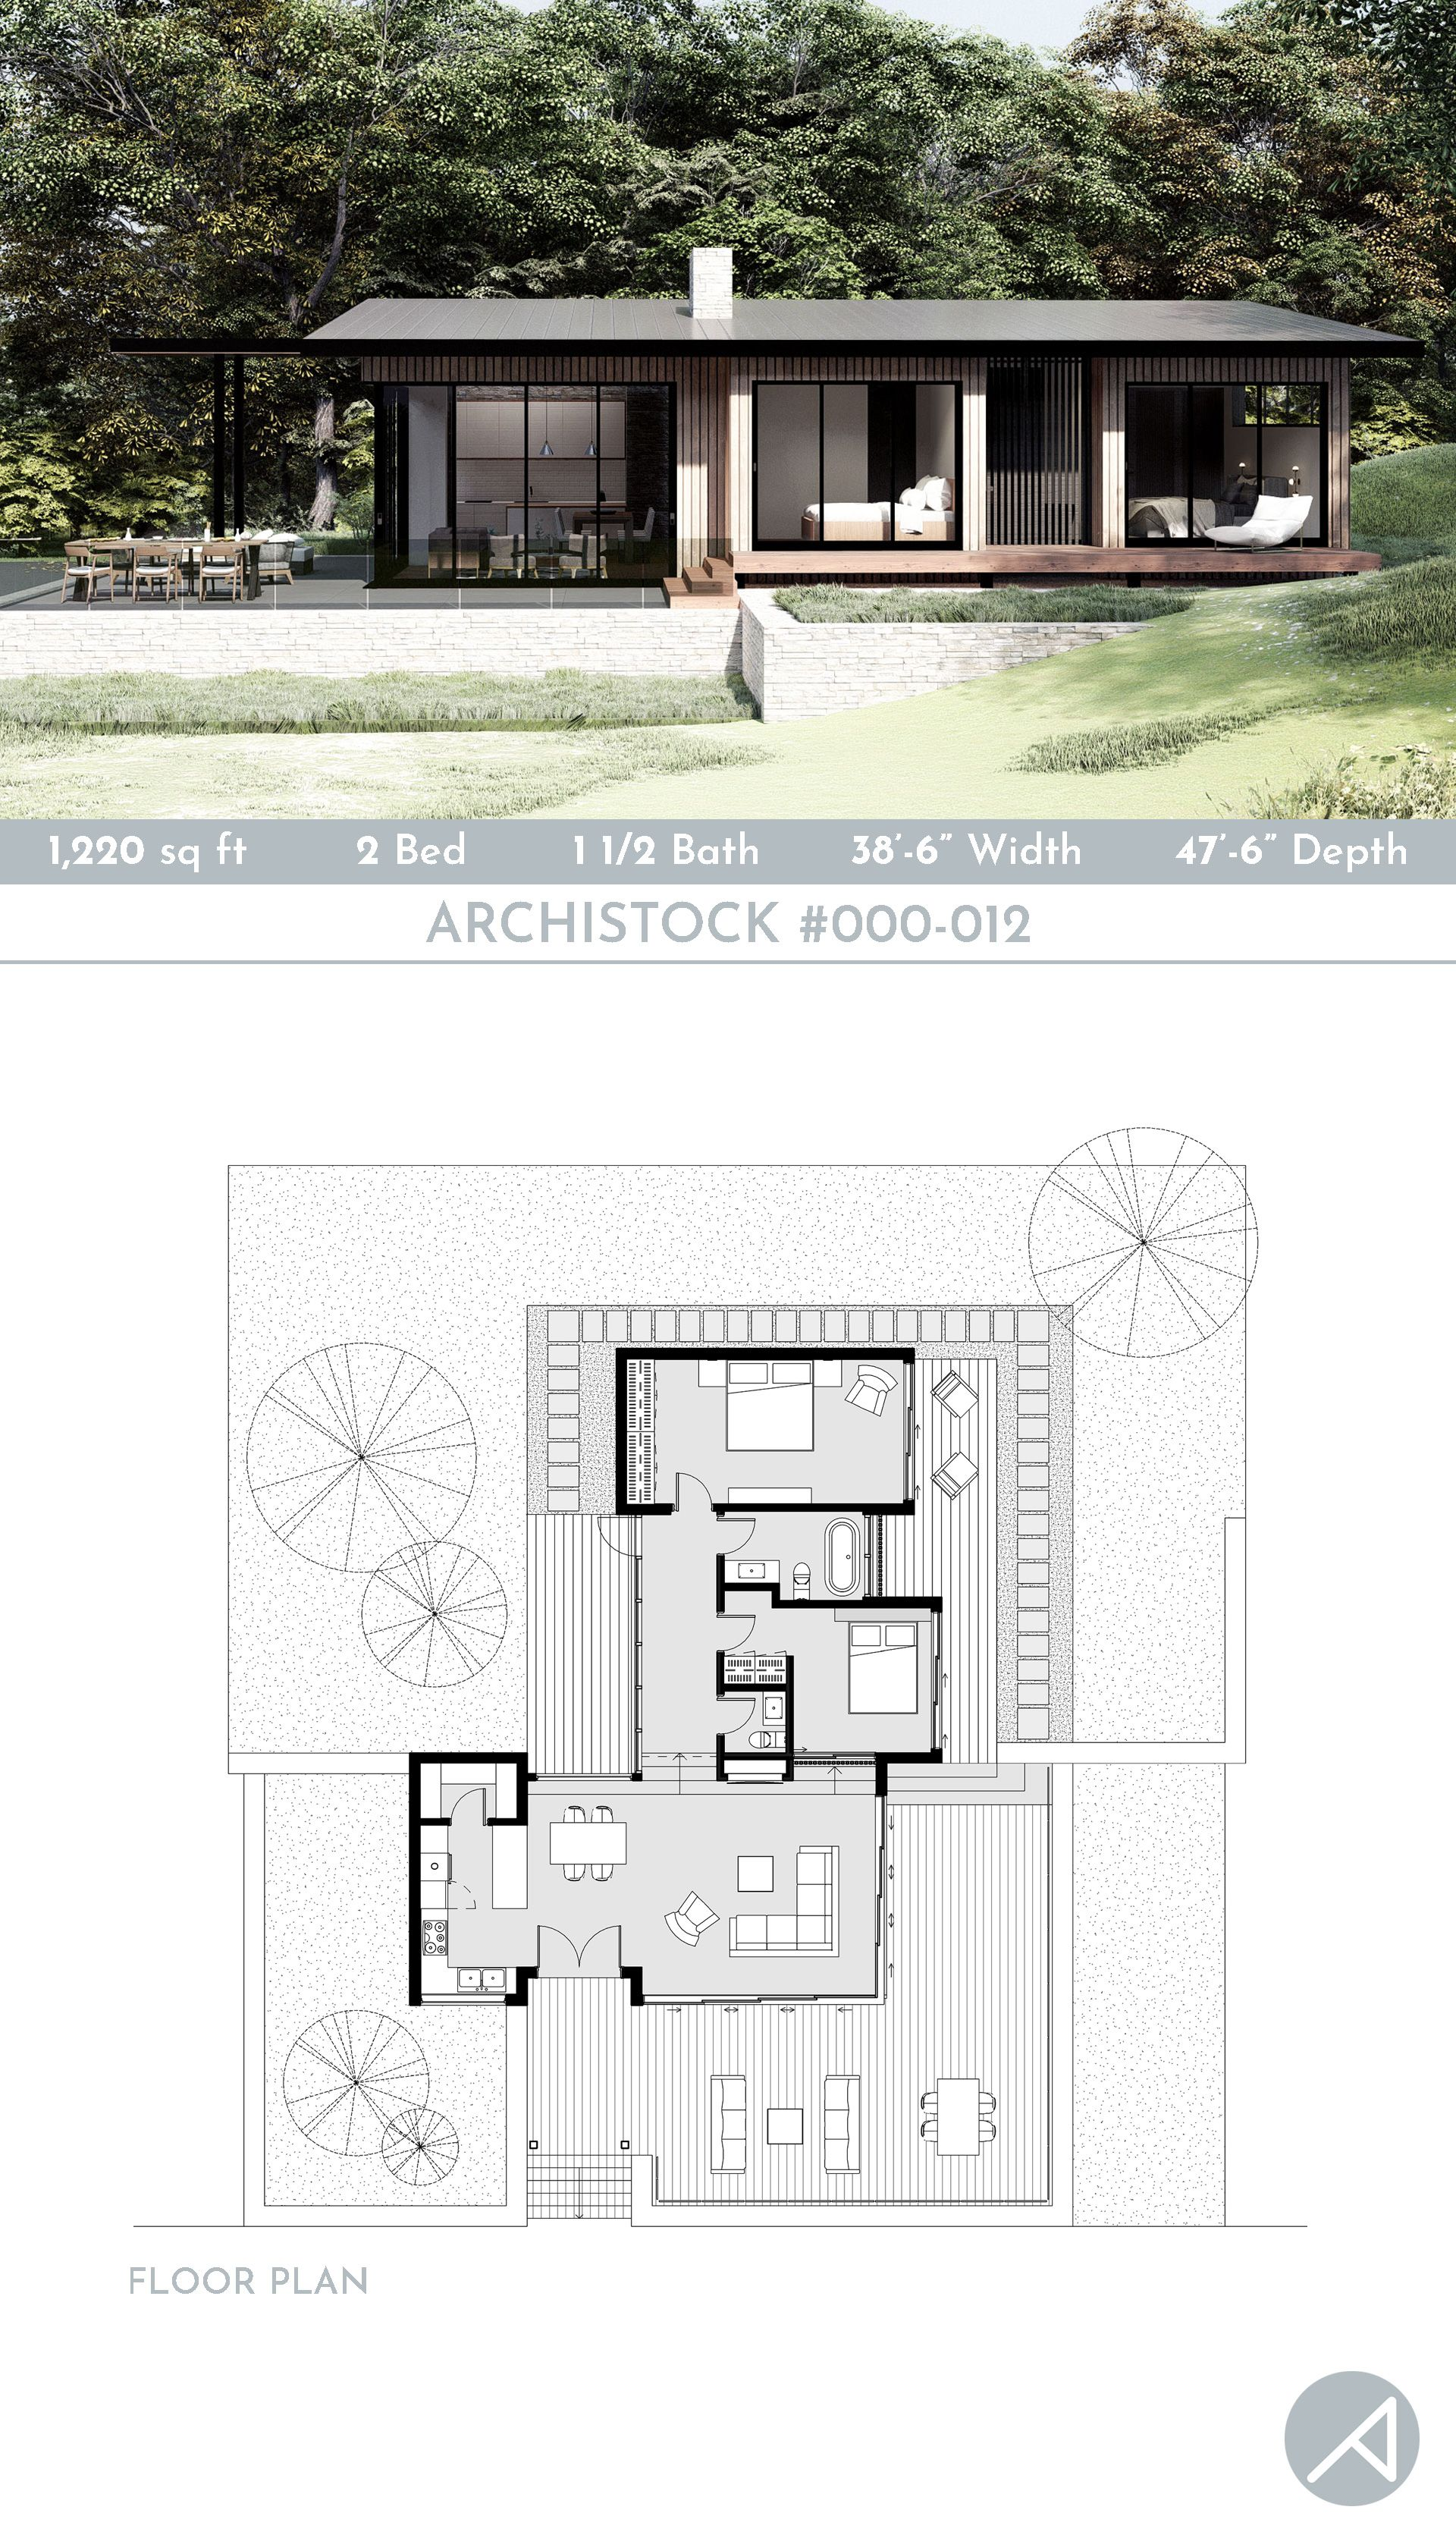 Modern Cabin House Design 1200 Sq Ft In 2020 Guest House Plans Cabin House Plans Cabin Design